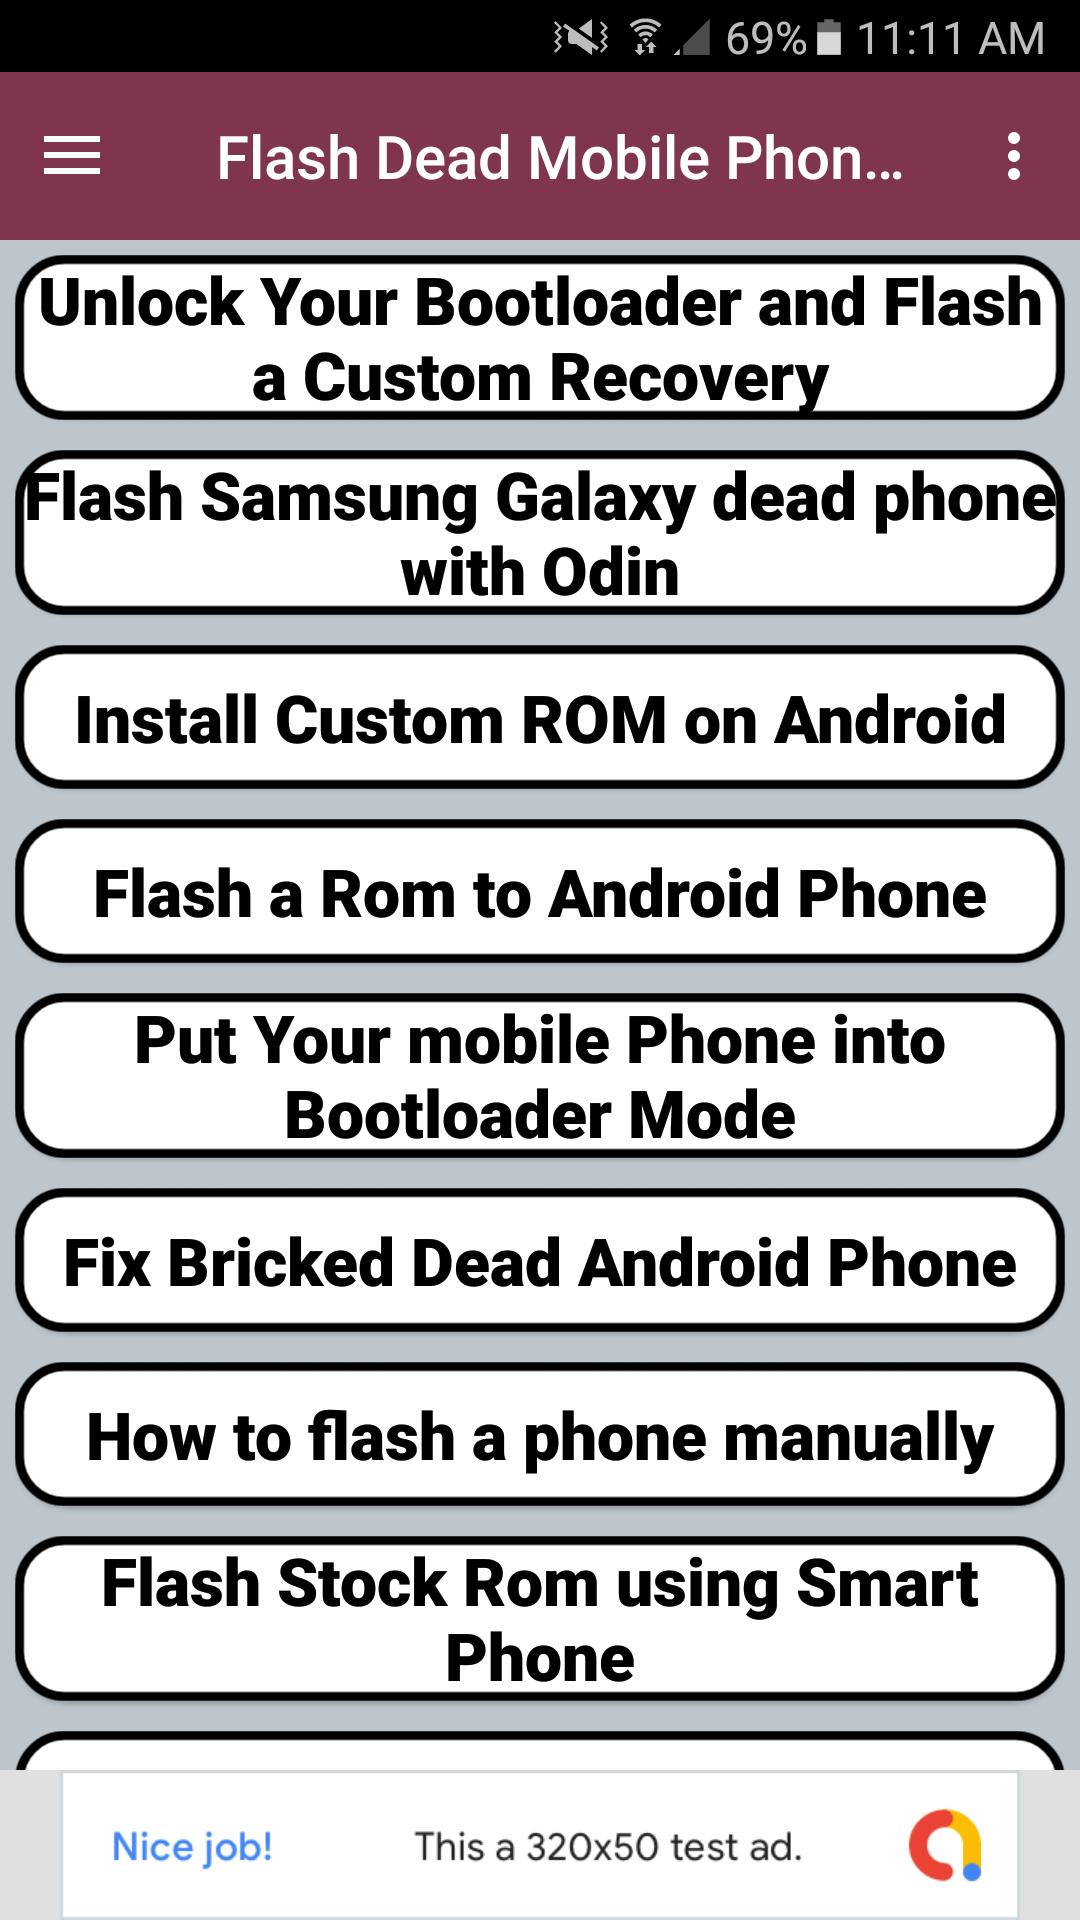 Flash Dead Mobile Phone Guide for Android - APK Download